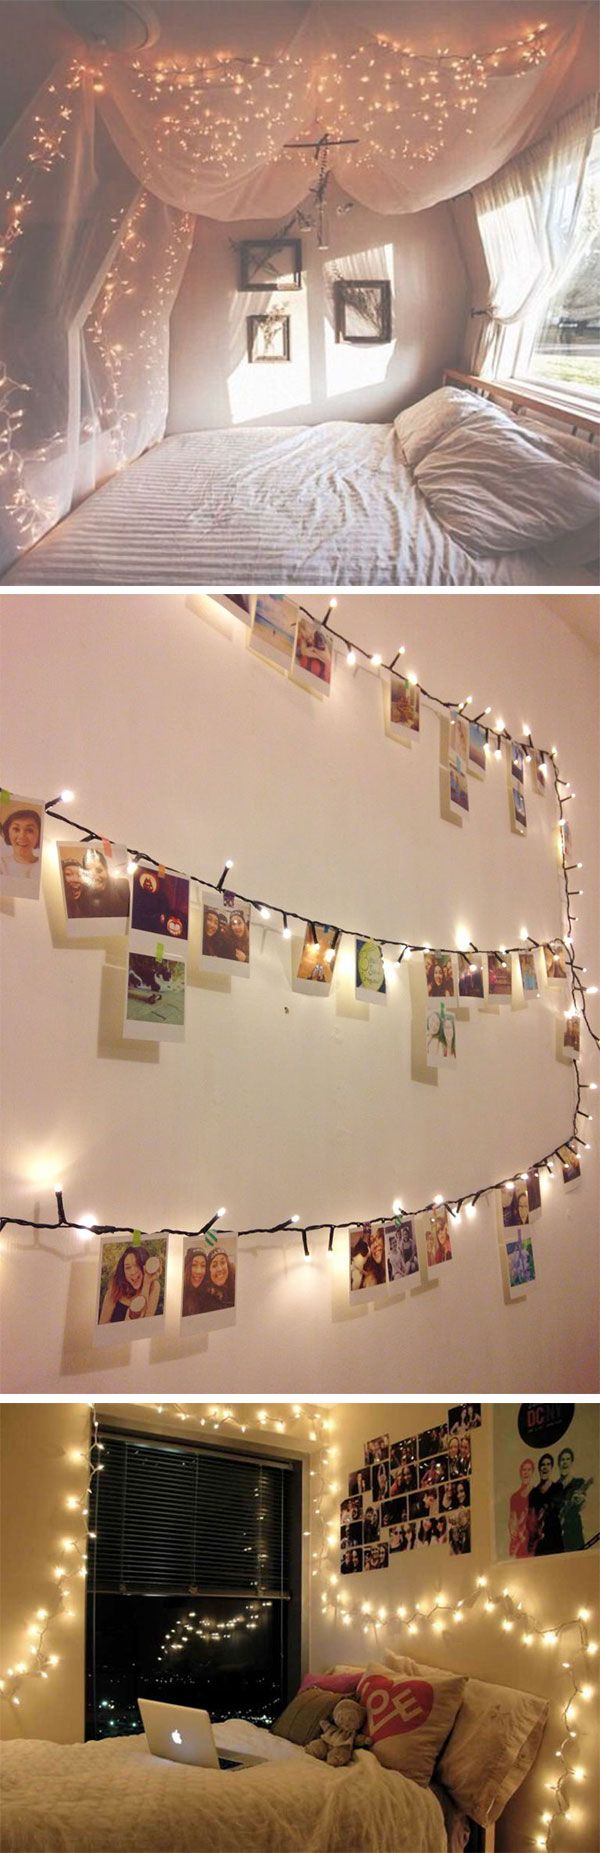 Fairy lights bedroom tumblr - 13 Ways To Use Fairy Lights To Make Your Home Look Magical